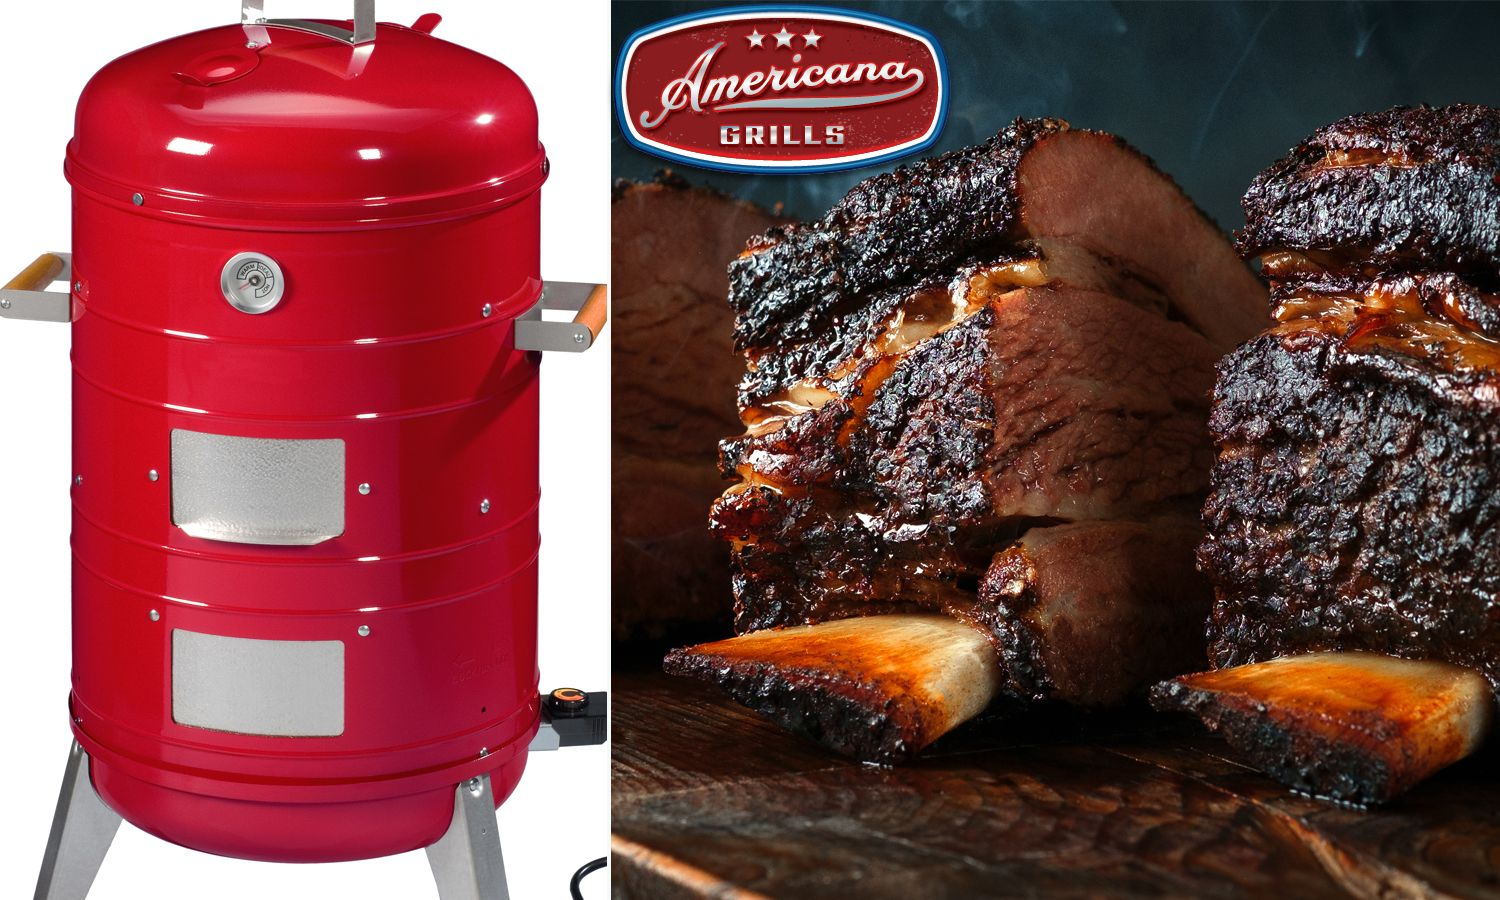 Today Is A Great Day For Smoked Ribs Americana Grills Americanagrills Charcoalgrills Smoked Ribs Charcoal Grill Grilling